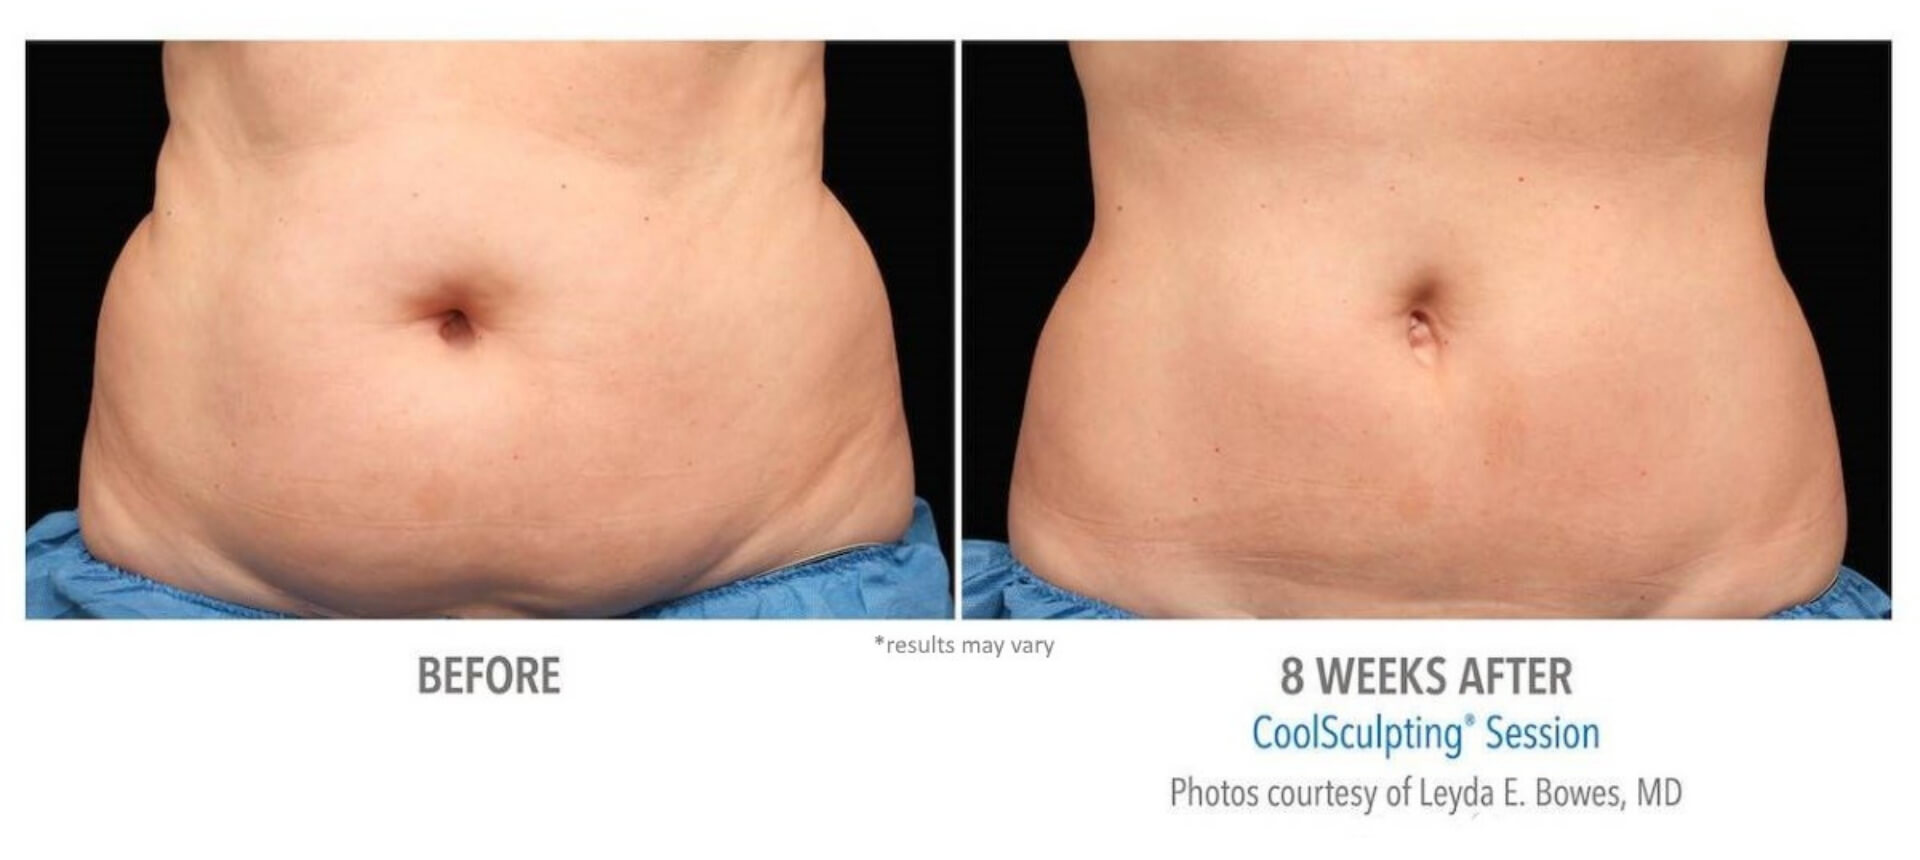 How to Guarantee the Best CoolSculpting Results   Vein and Laser ...